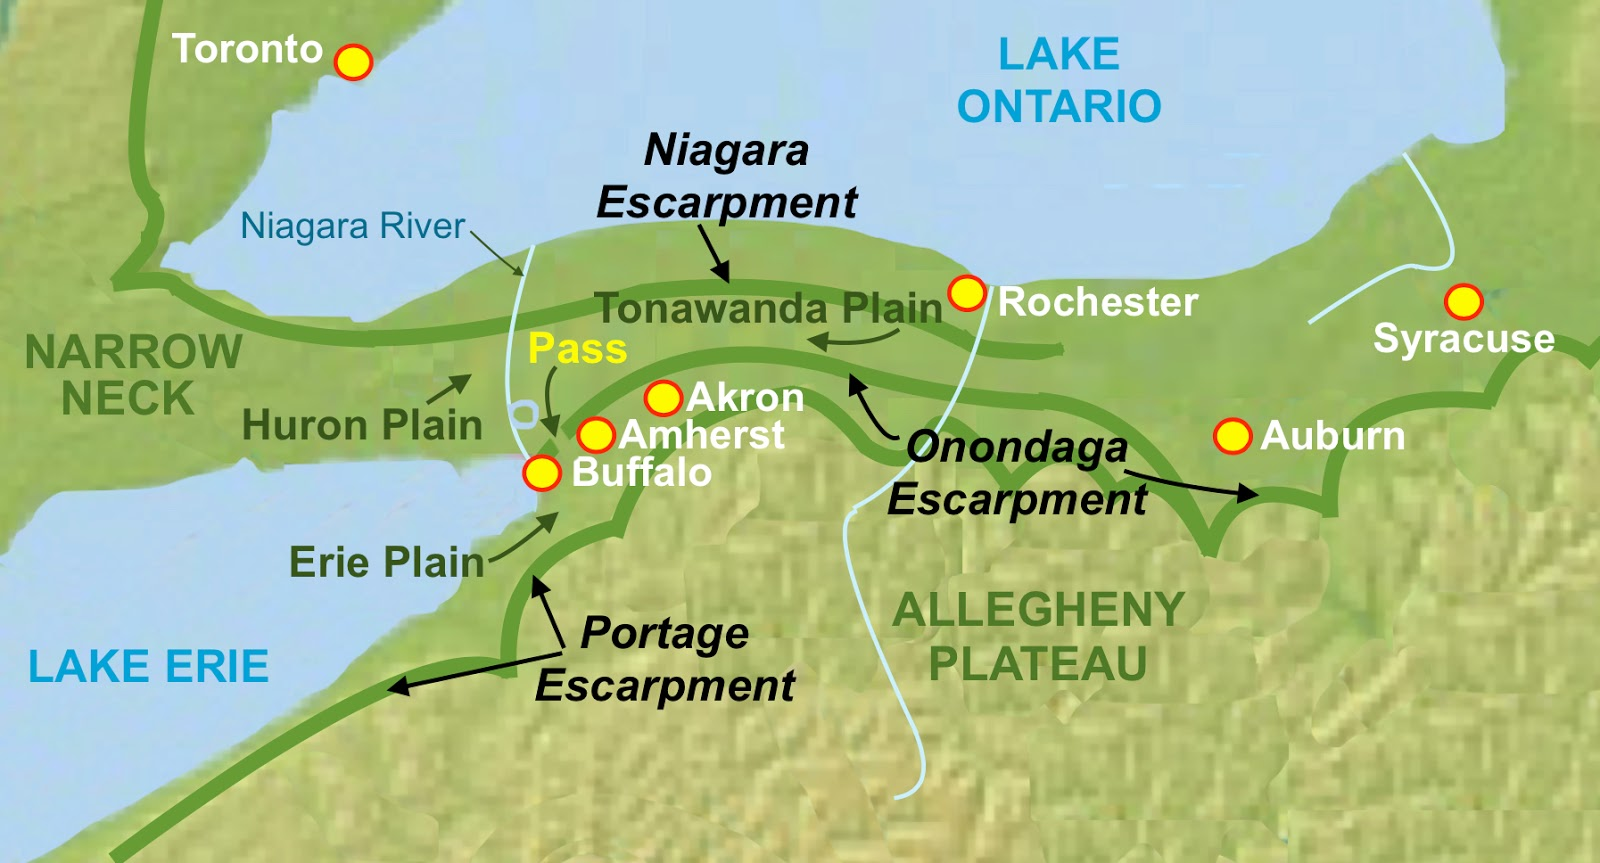 the niagara peninsula a stretch of land between lake ontario to the north and lake erie to the south which the great lake theorists claim is their narrow